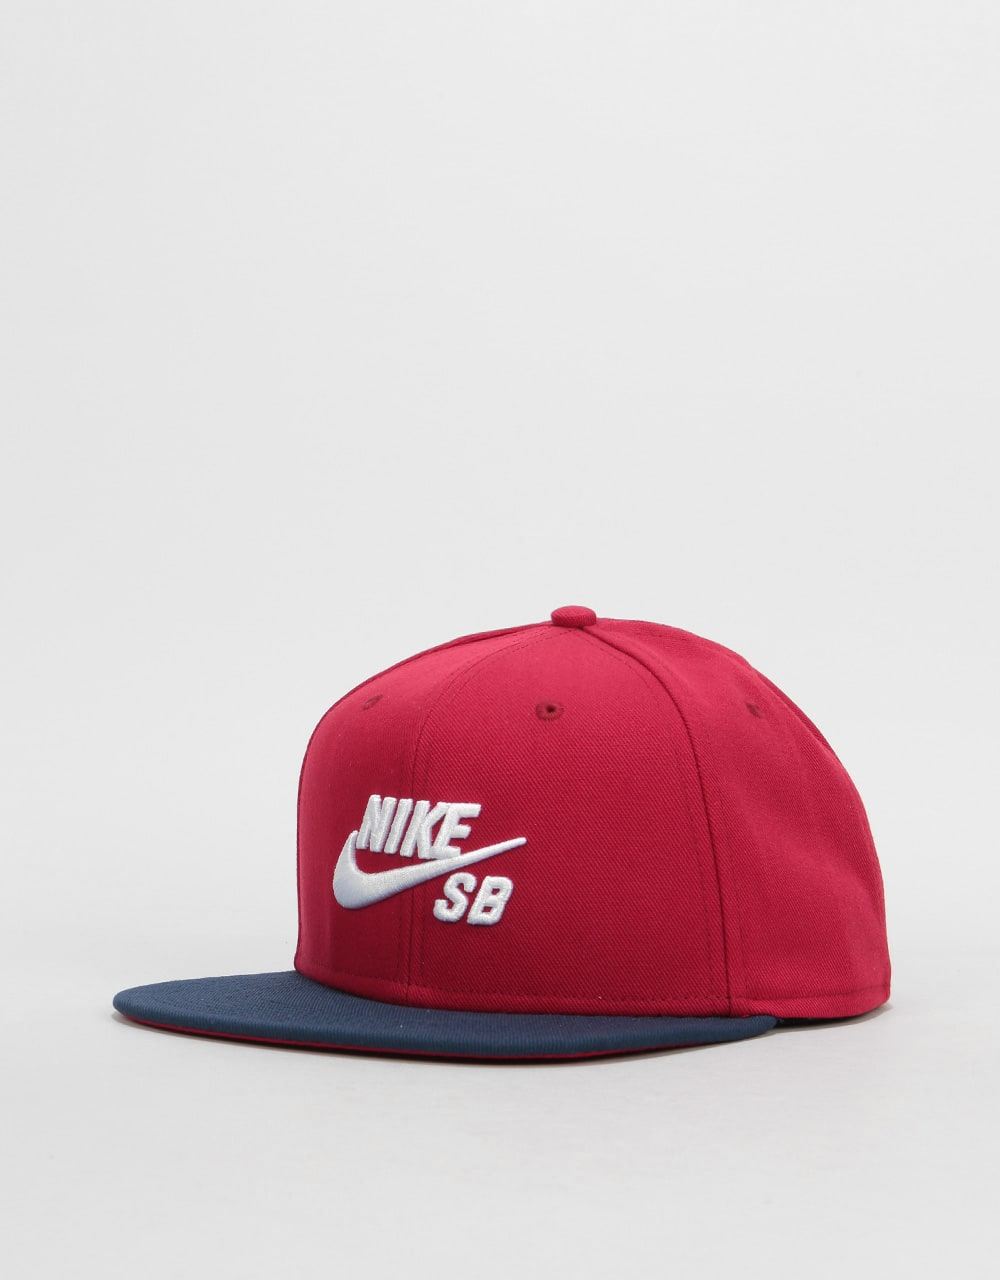 72f9e06b0fd Nike SB Icon Snapback Cap - Red Crush Obsidian White